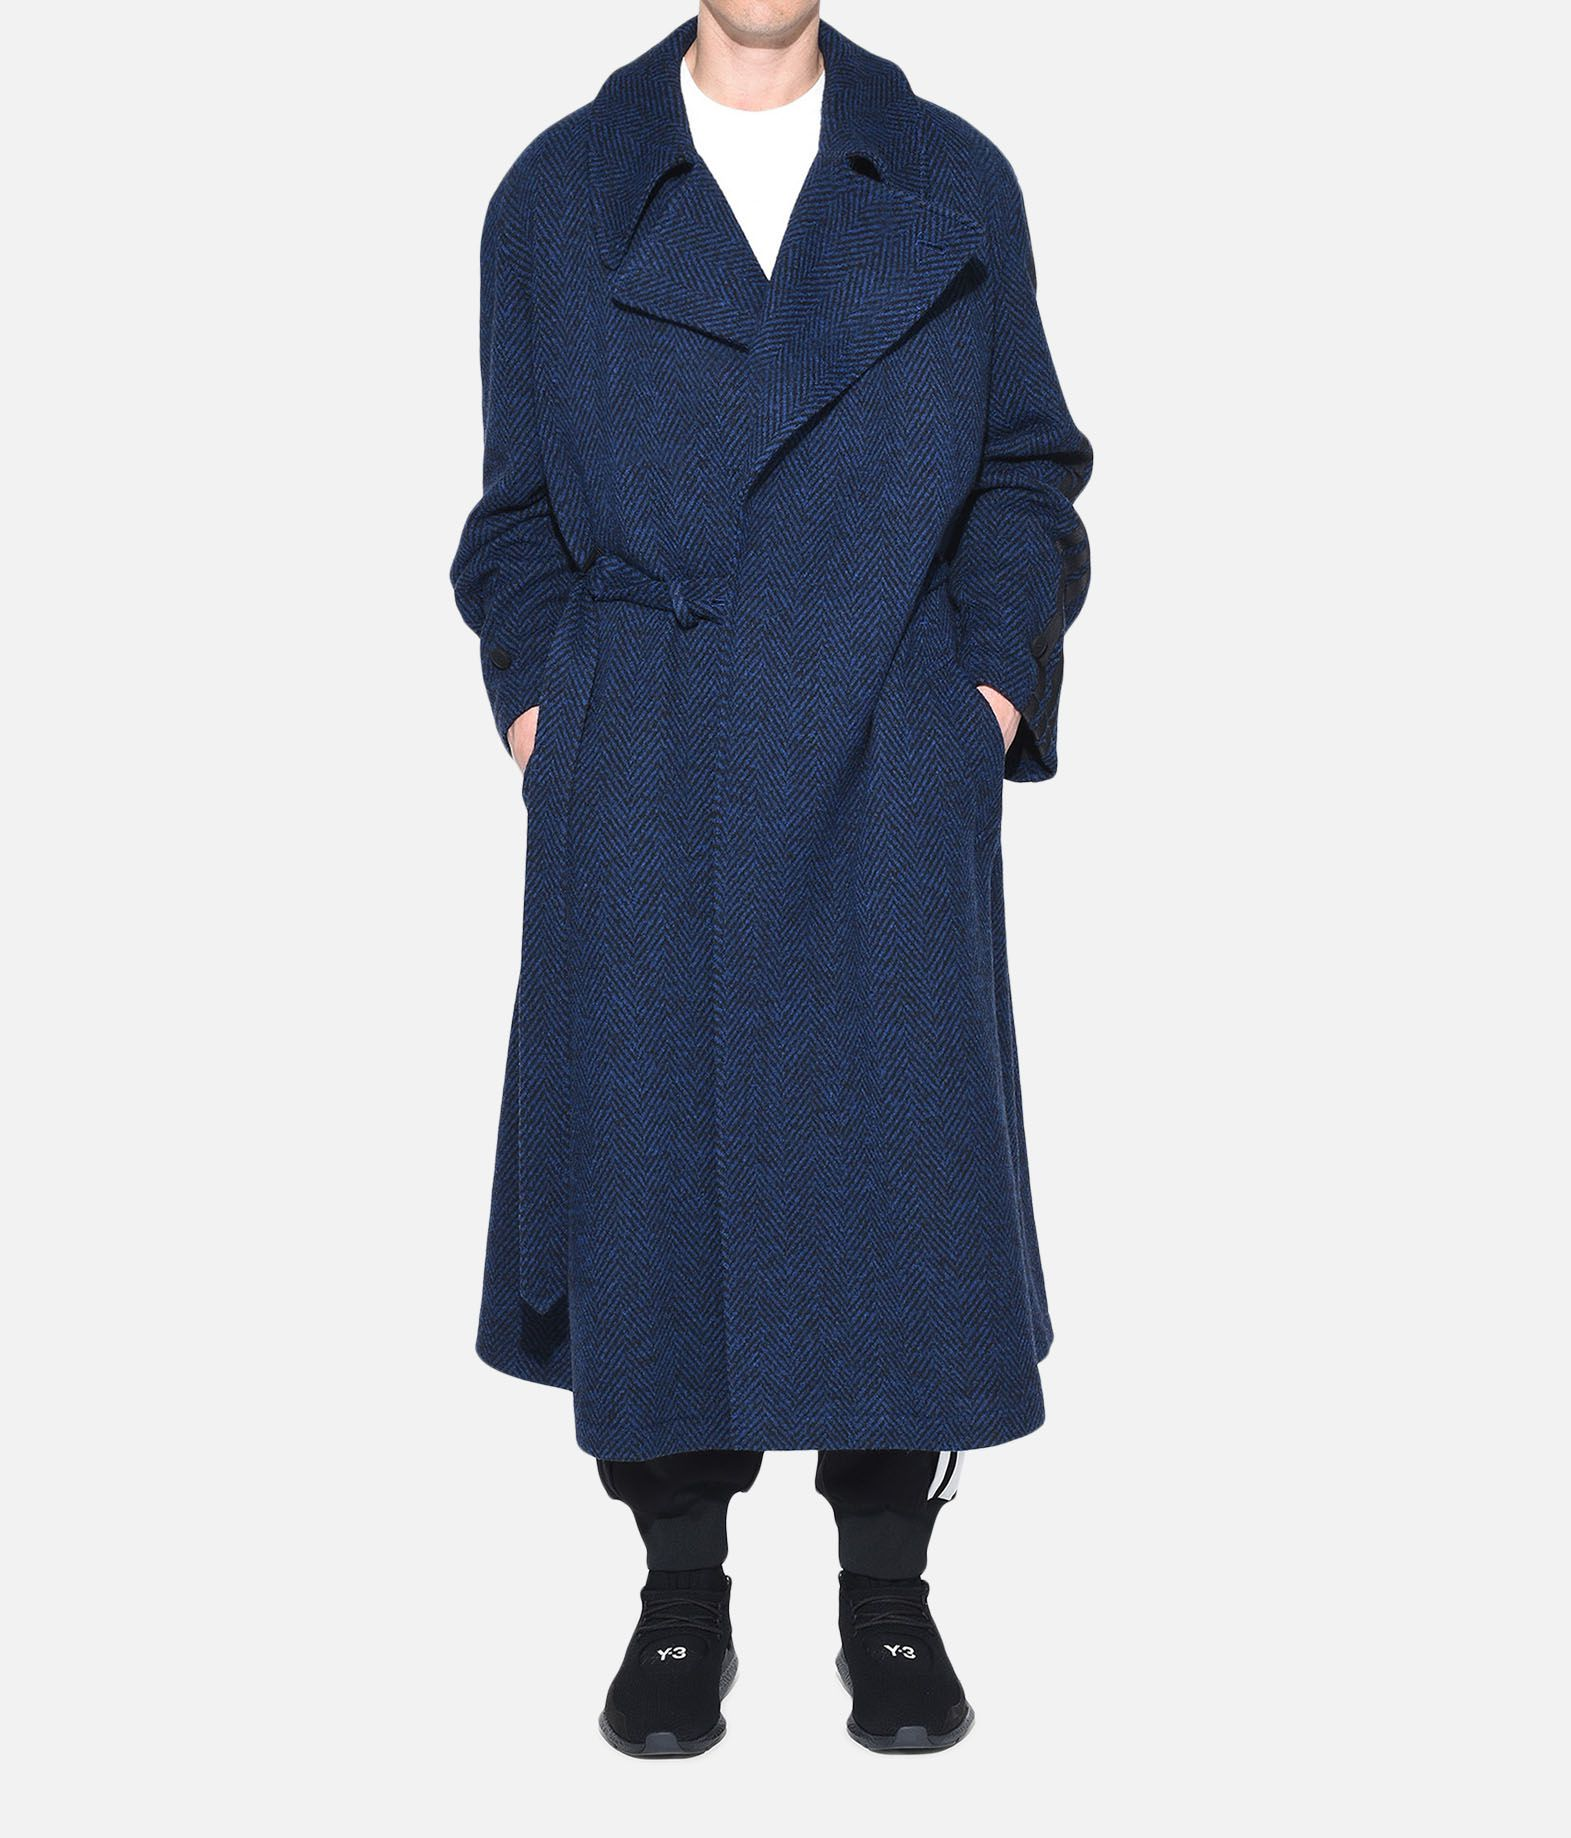 Y-3 Y-3 Tailored Wool Coat コート メンズ r